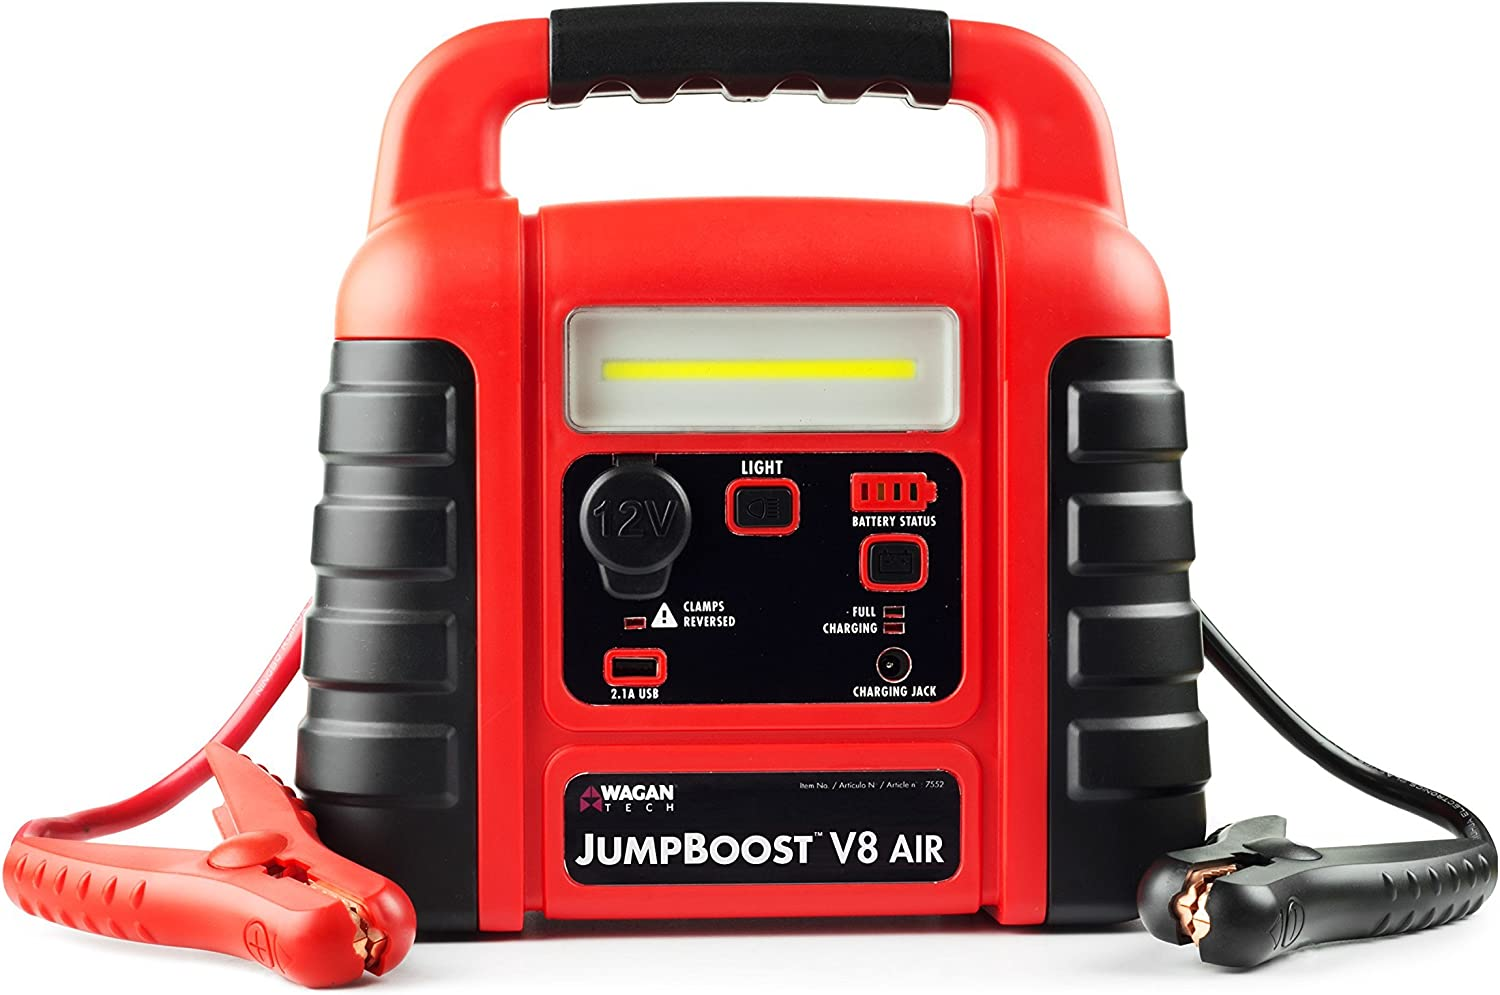 Wagan EL7552 Jumpboost V8 Air 1000 Peak Amps Jump Starter with 260 PSI Air Compressor, 1 Built-in DC Socket and USB Port